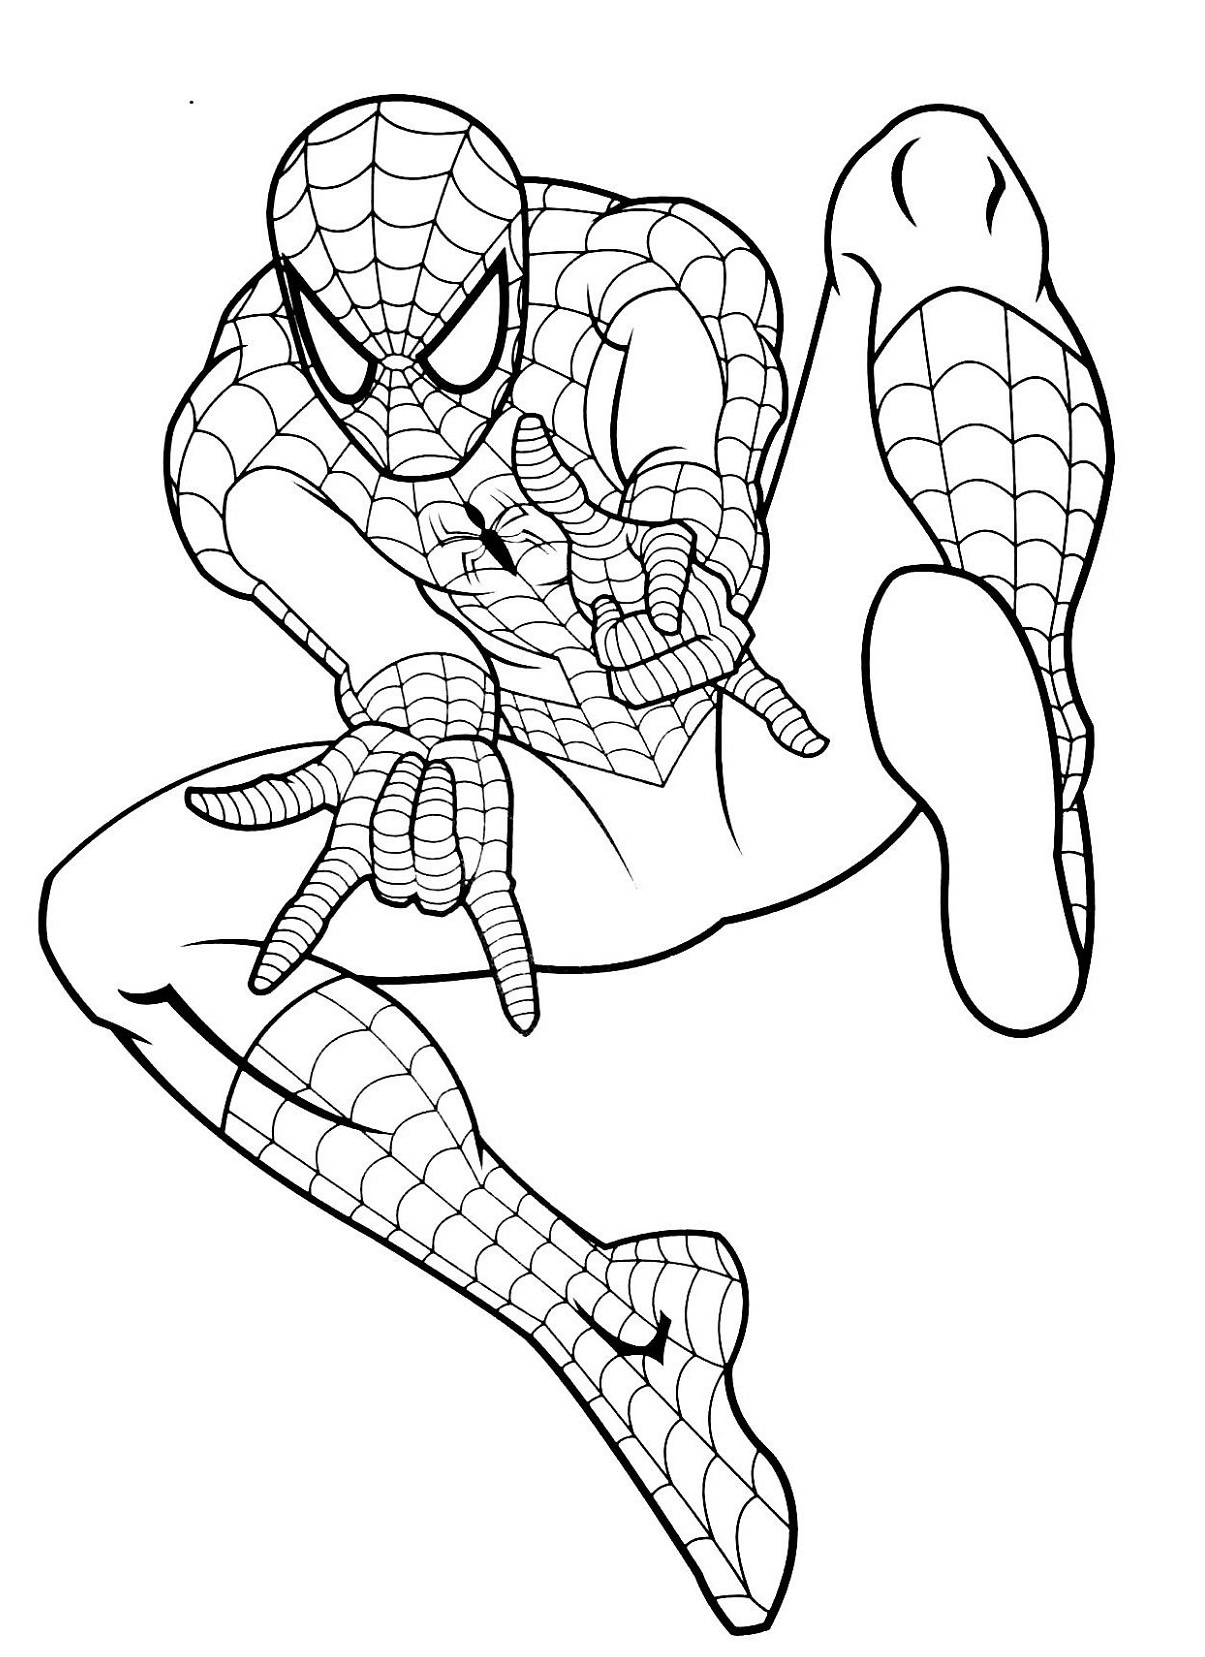 spiderman colouring pics spiderman coloring pages colouring spiderman pics